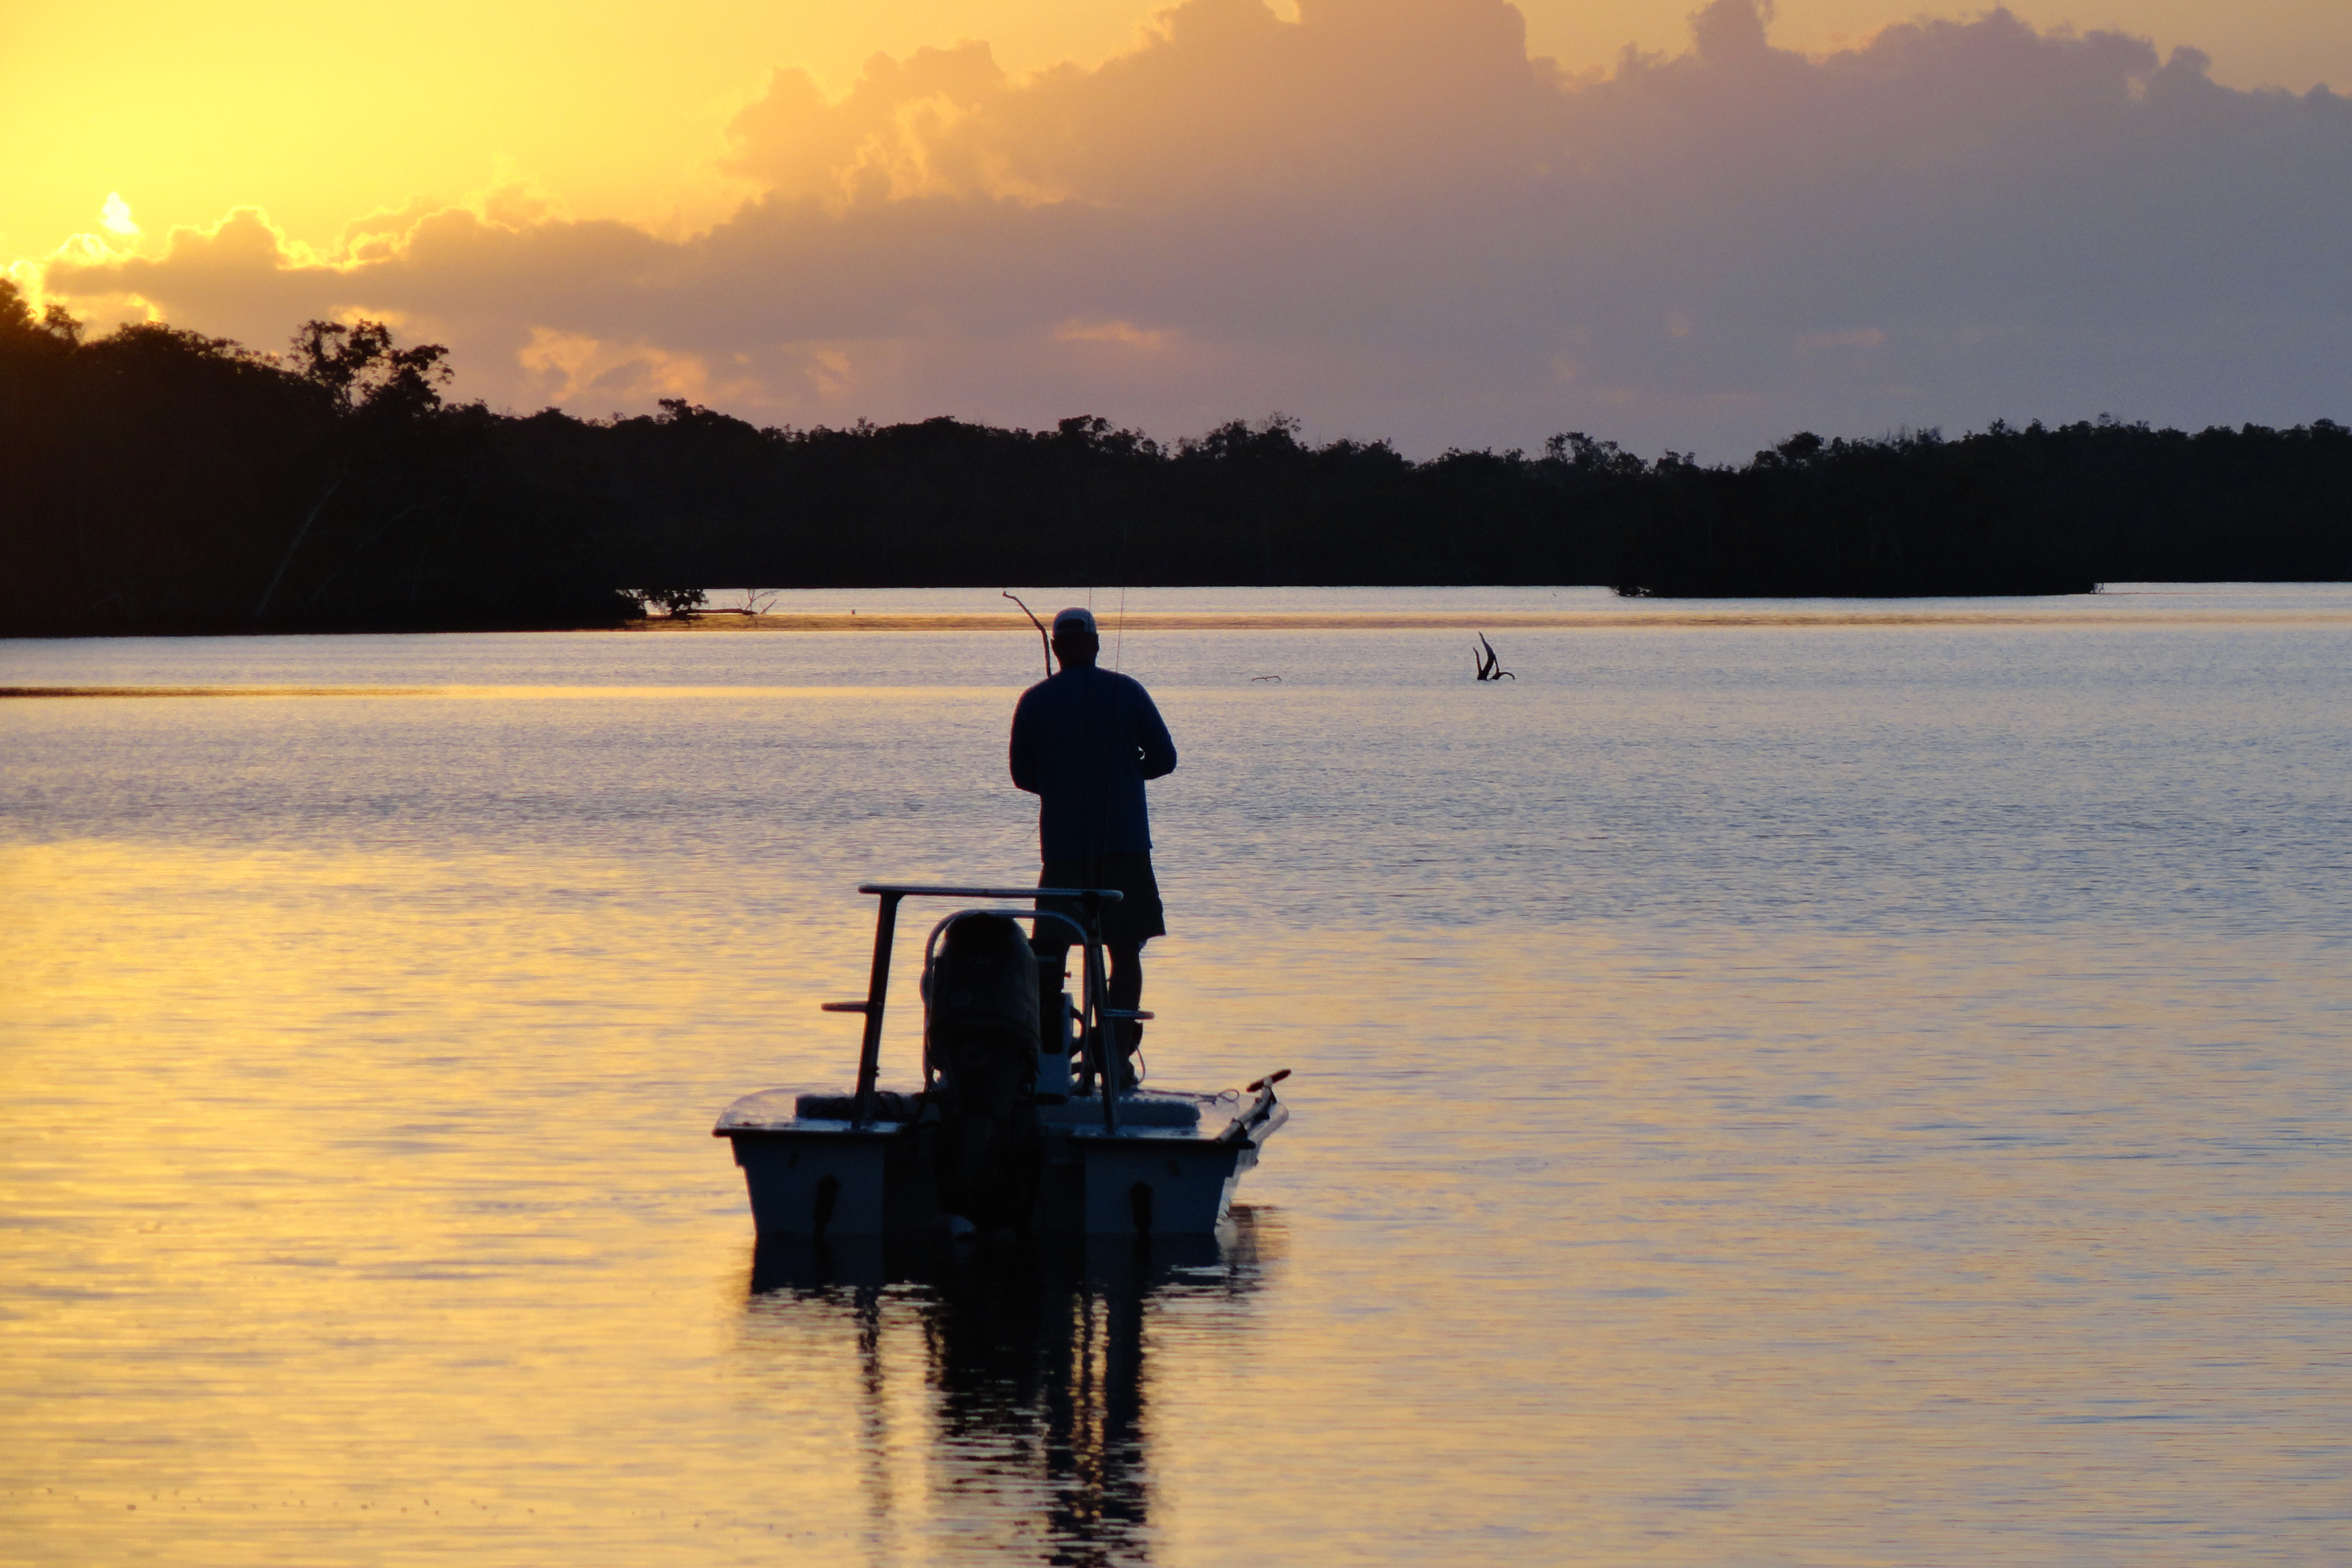 Silhouette of an angler fishing from a small boat on a lake with the sun setting in the background.